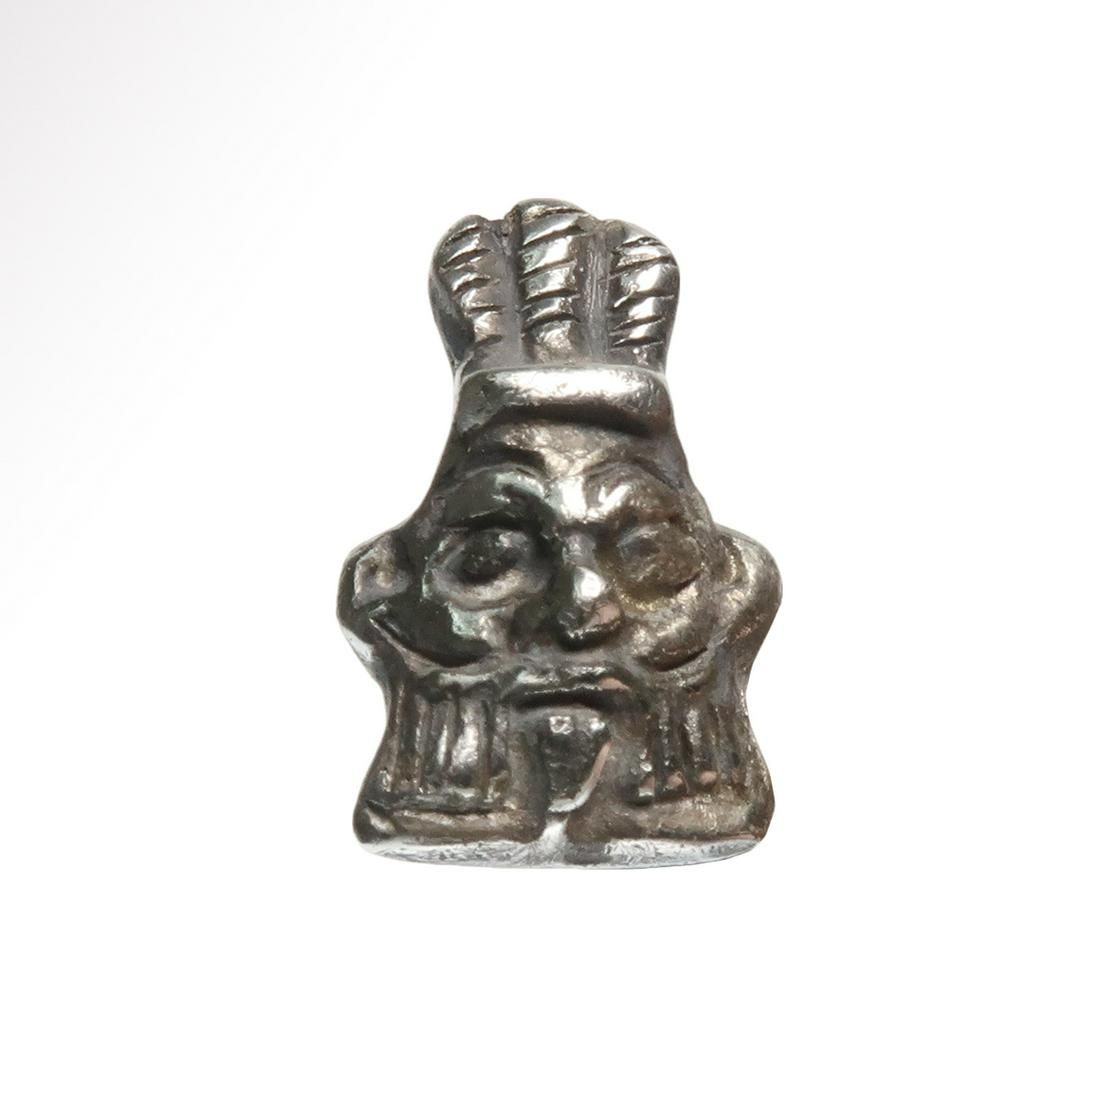 Egyptian Solid Silver Bes Head Amulet, c. 350 B.C.